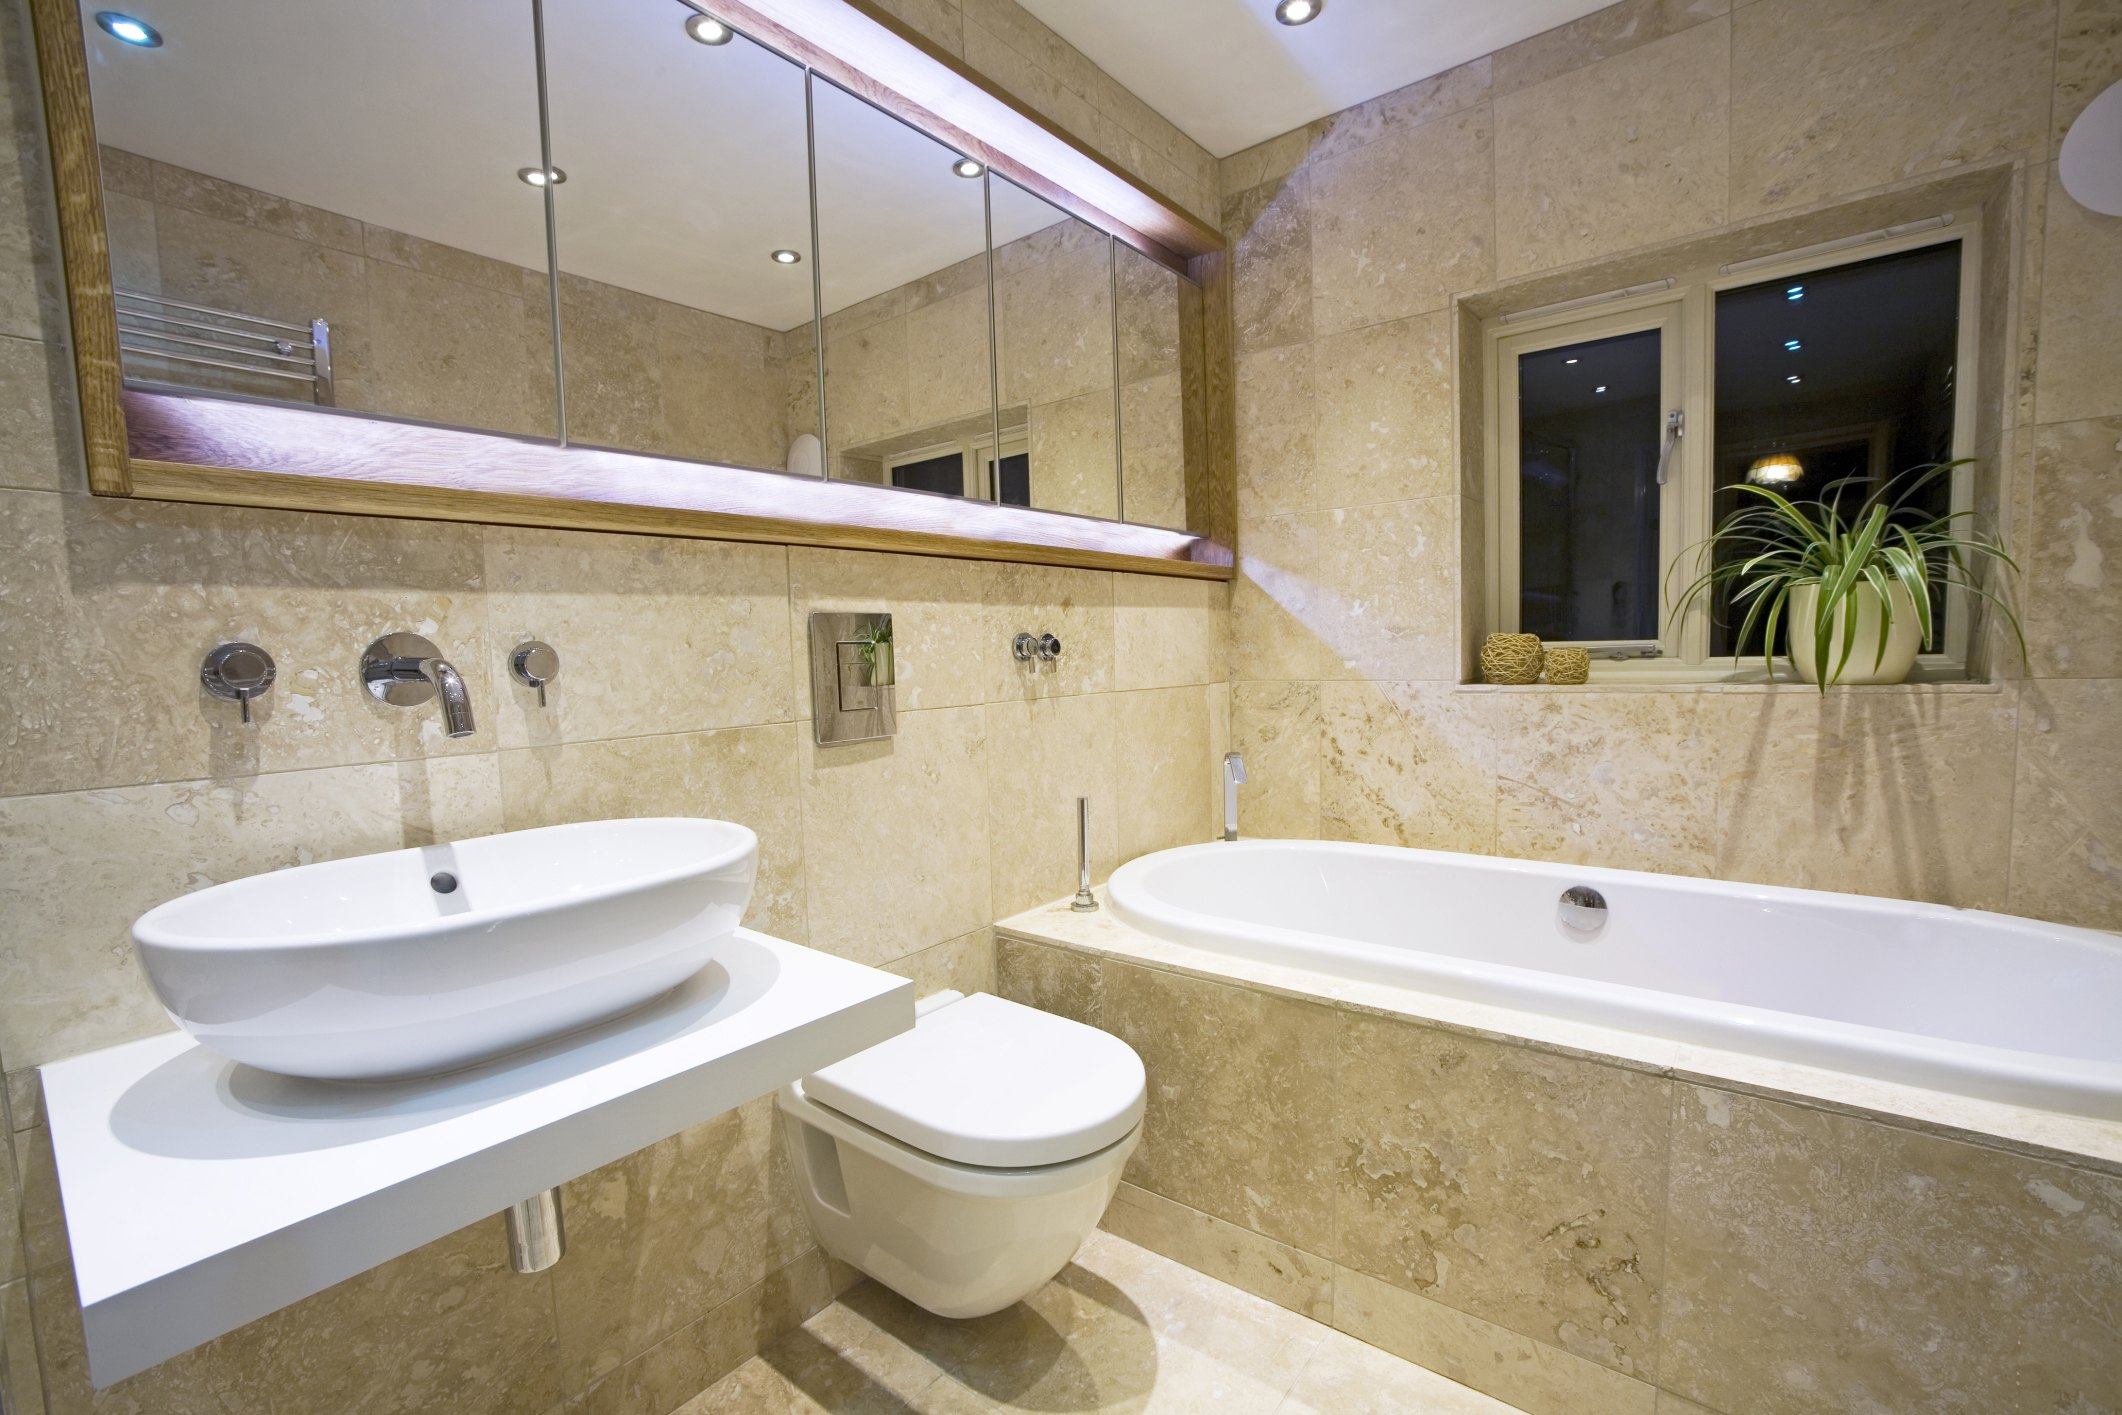 The Average Cost Of Retiling A Bathroom (with Pictures)